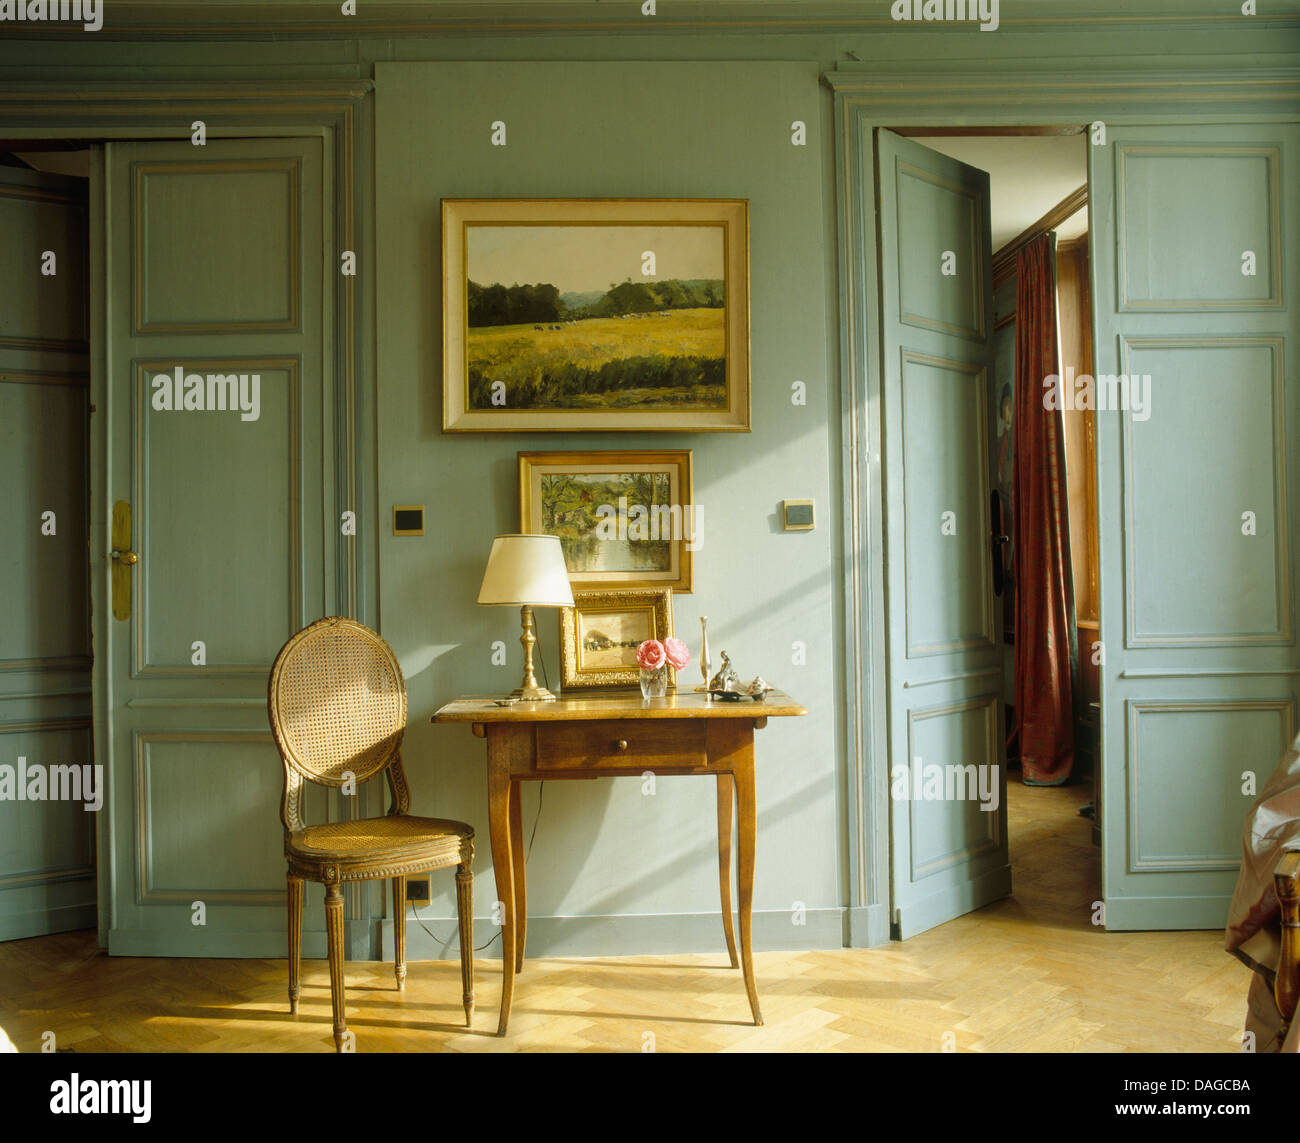 Landscape painting on wall above small antique table and chair and pale  gray paneled French hall with half open double doors - Landscape Painting On Wall Above Small Antique Table And Chair And